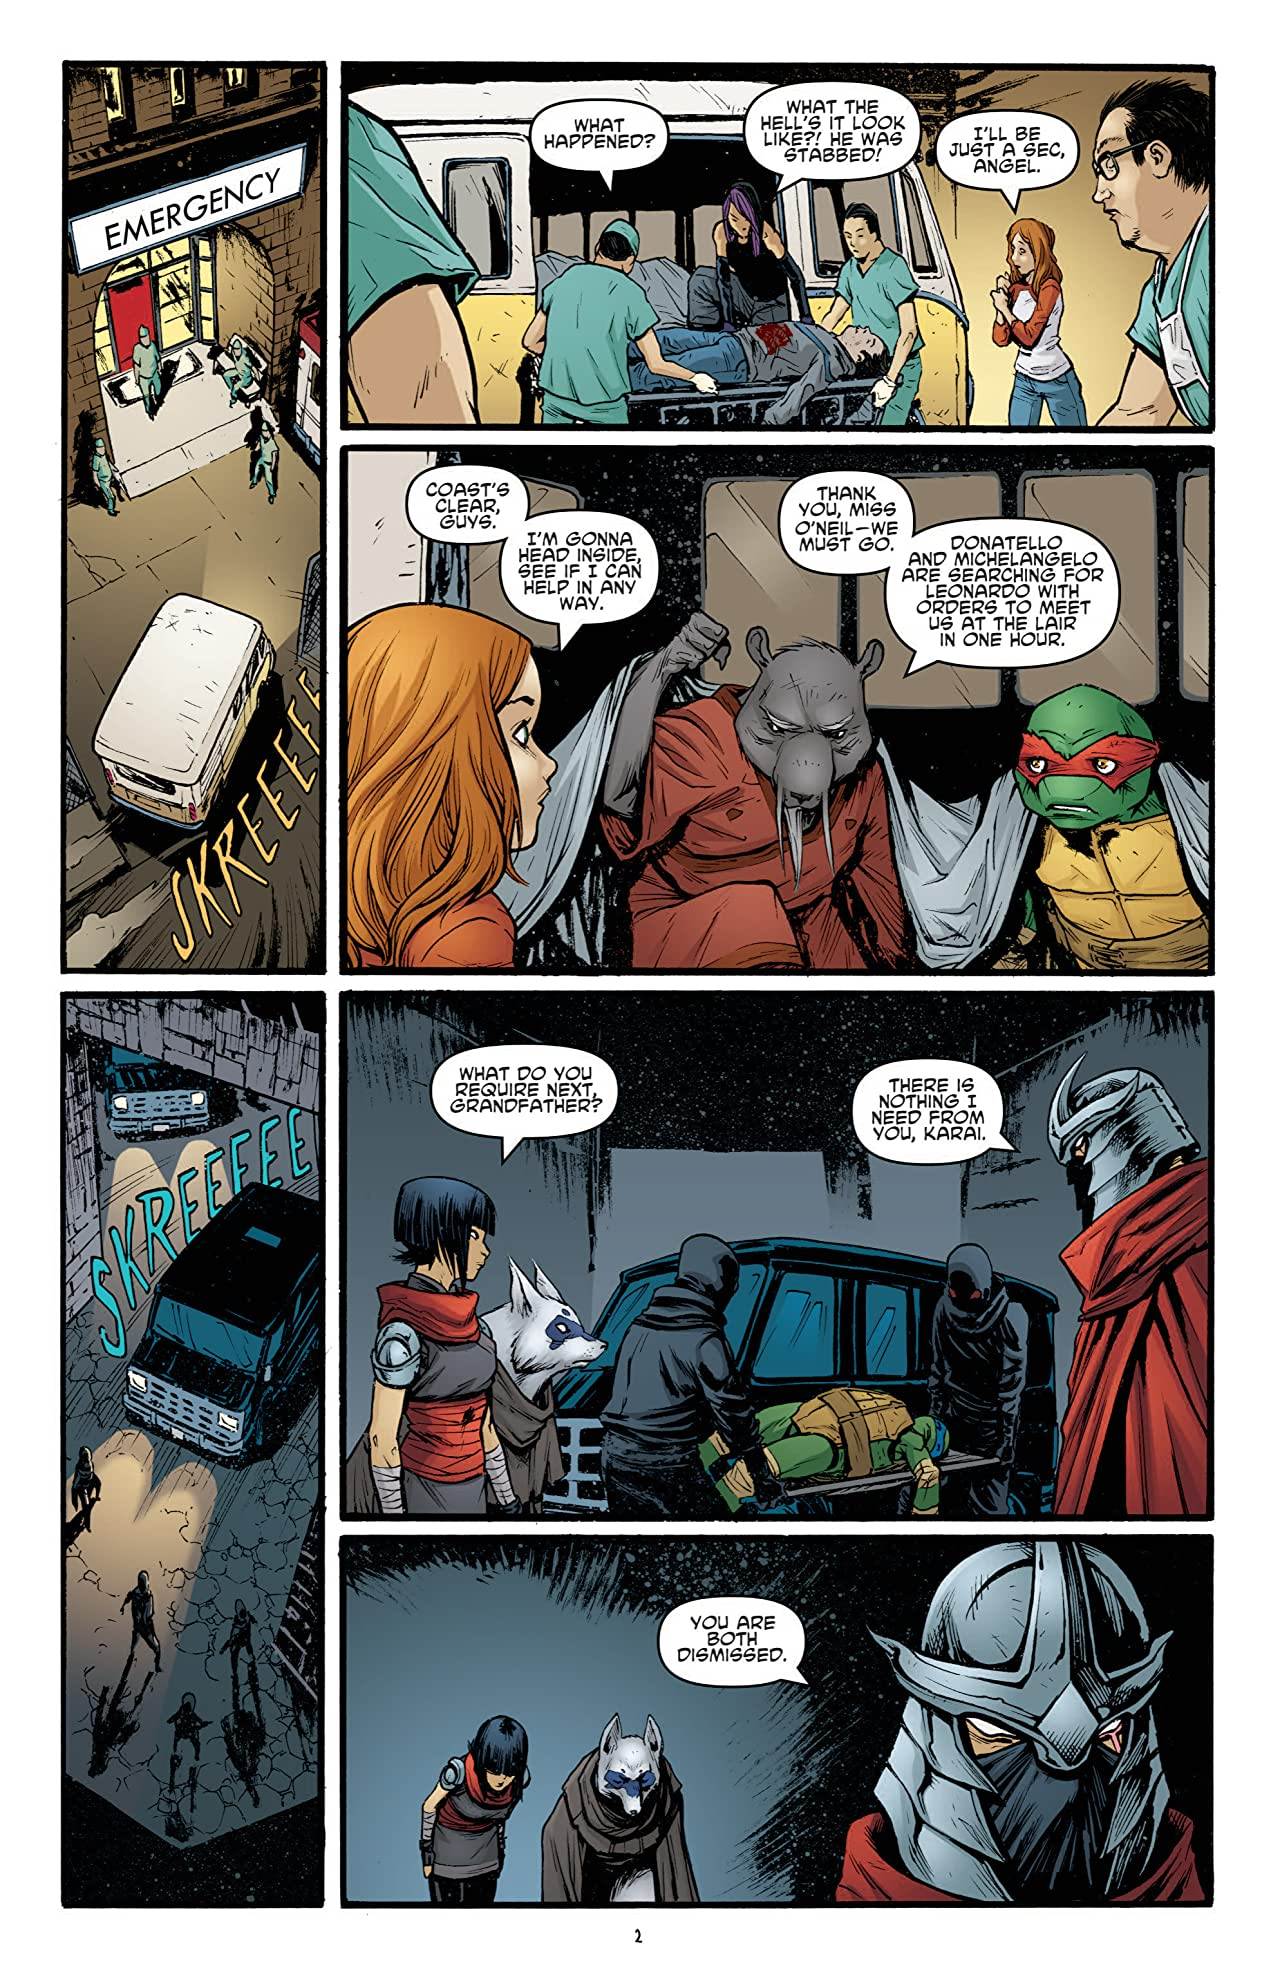 Teenage Mutant Ninja Turtles #23